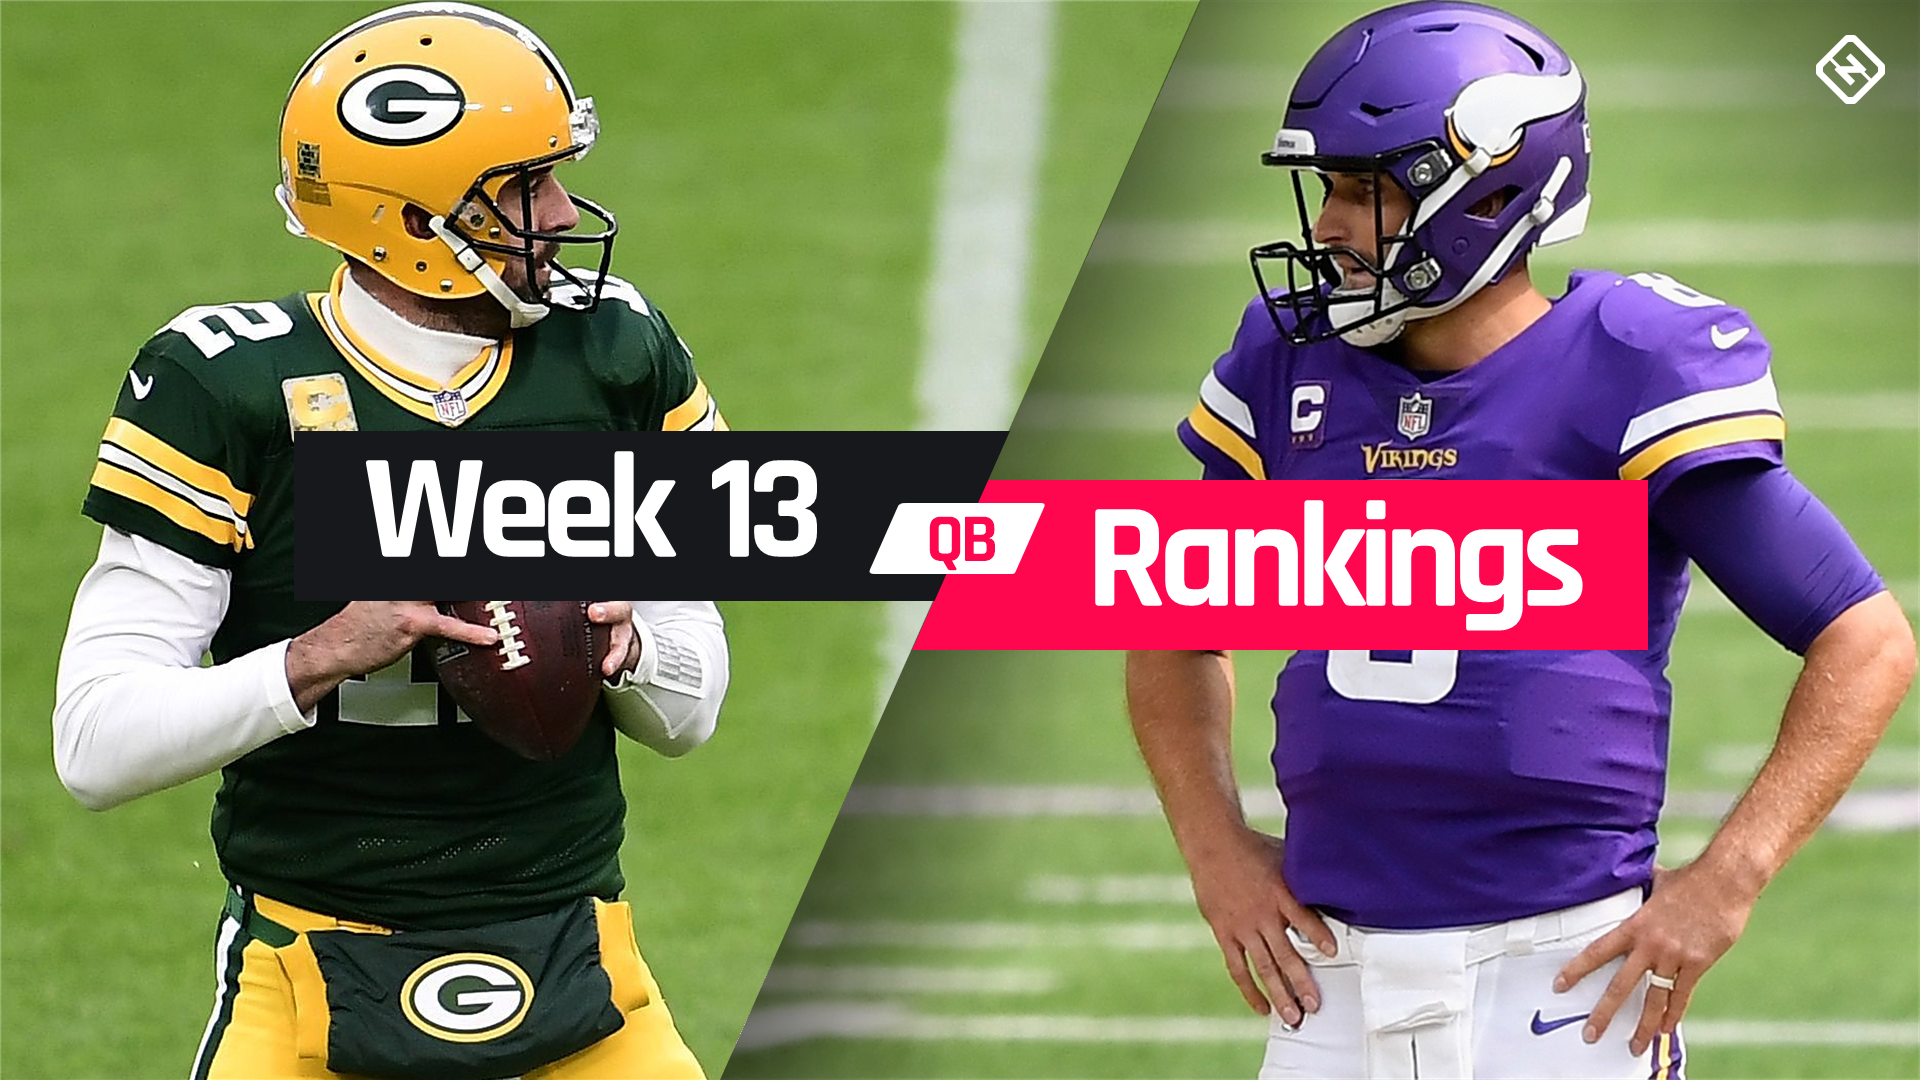 Week 13 Fantasy QB Rankings: Must-starts, sleepers, potential busts at quarterback